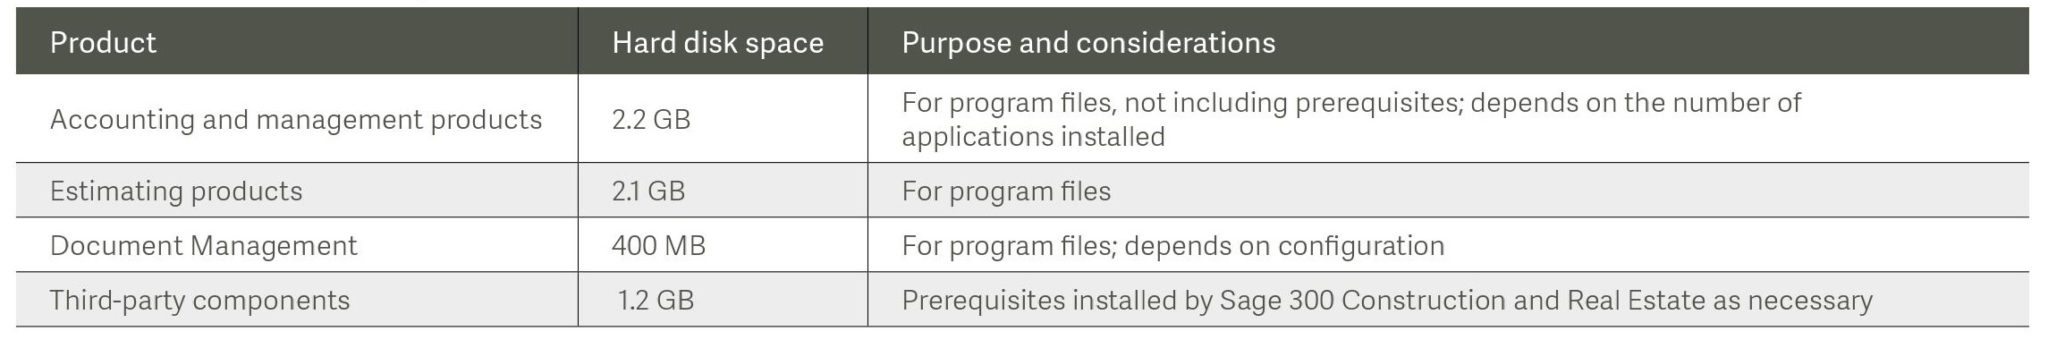 Sage 300 Construction (CRE) Hard Disk Requirements Version 15.1